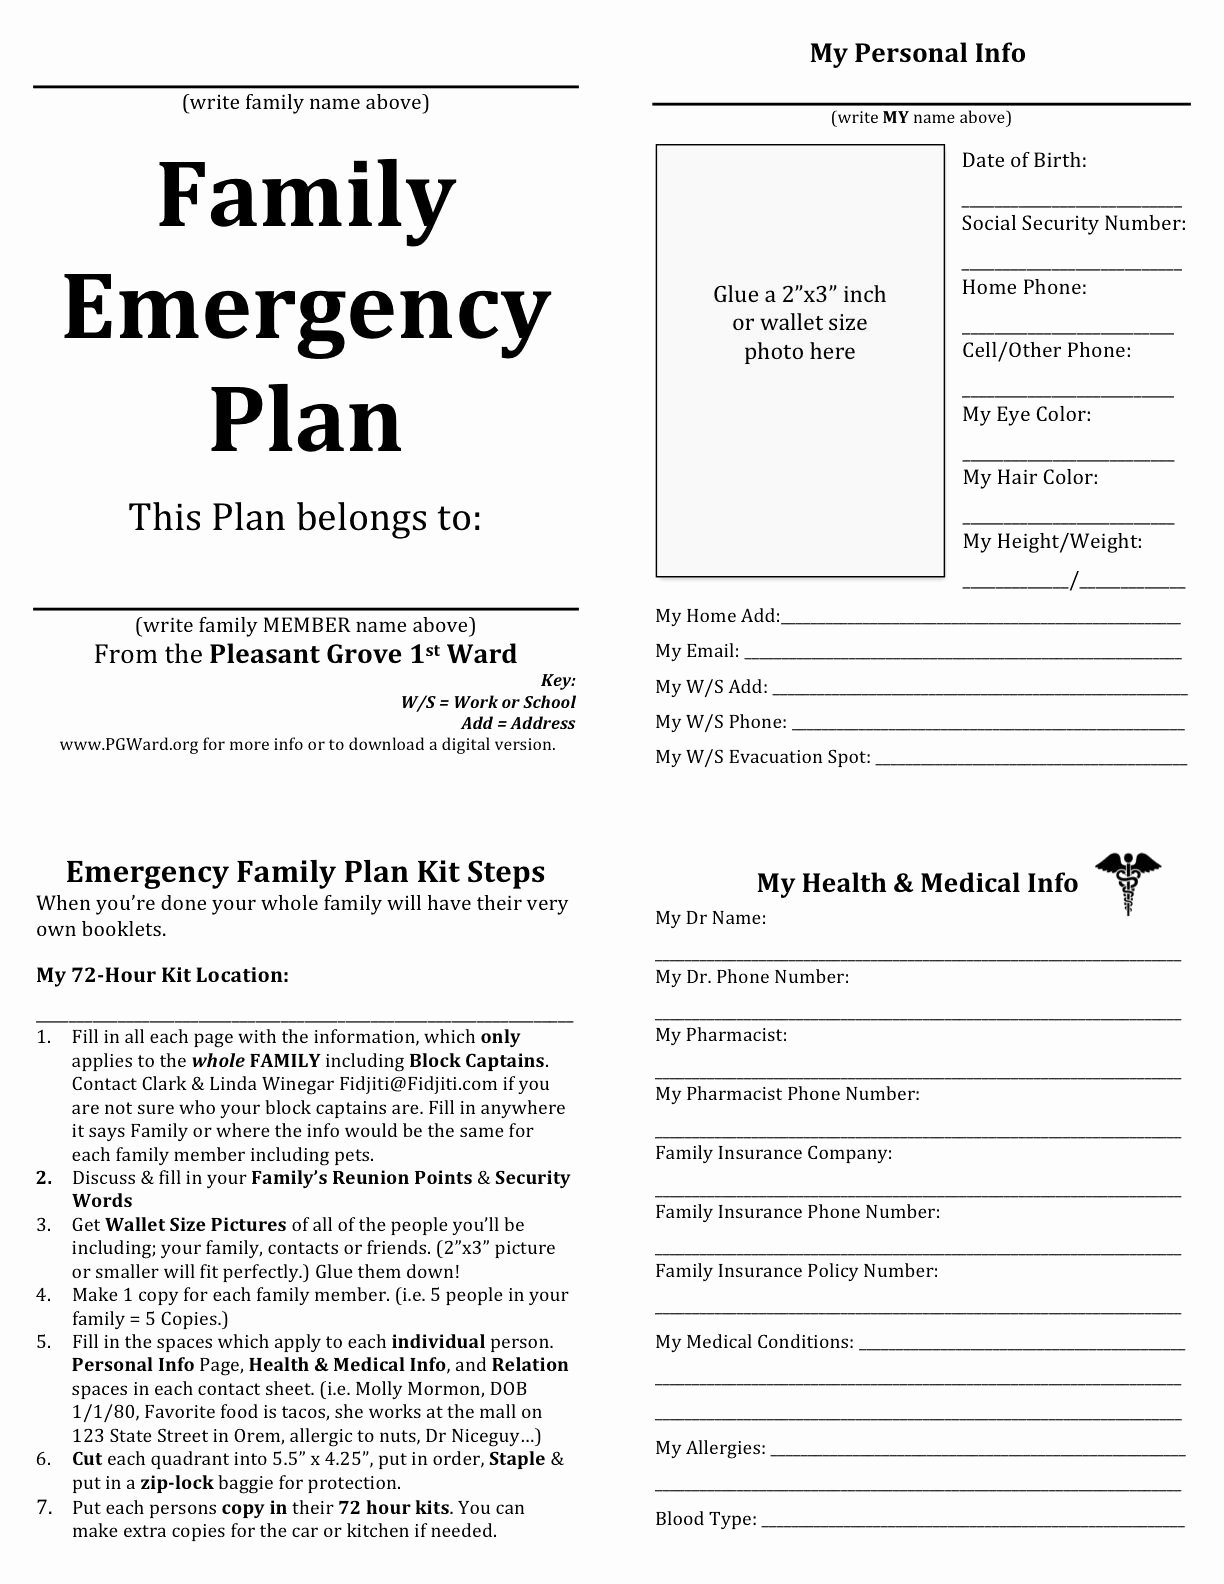 Family Safety Plan Template Best Of Family Emergency Plan Printable Documents for Your